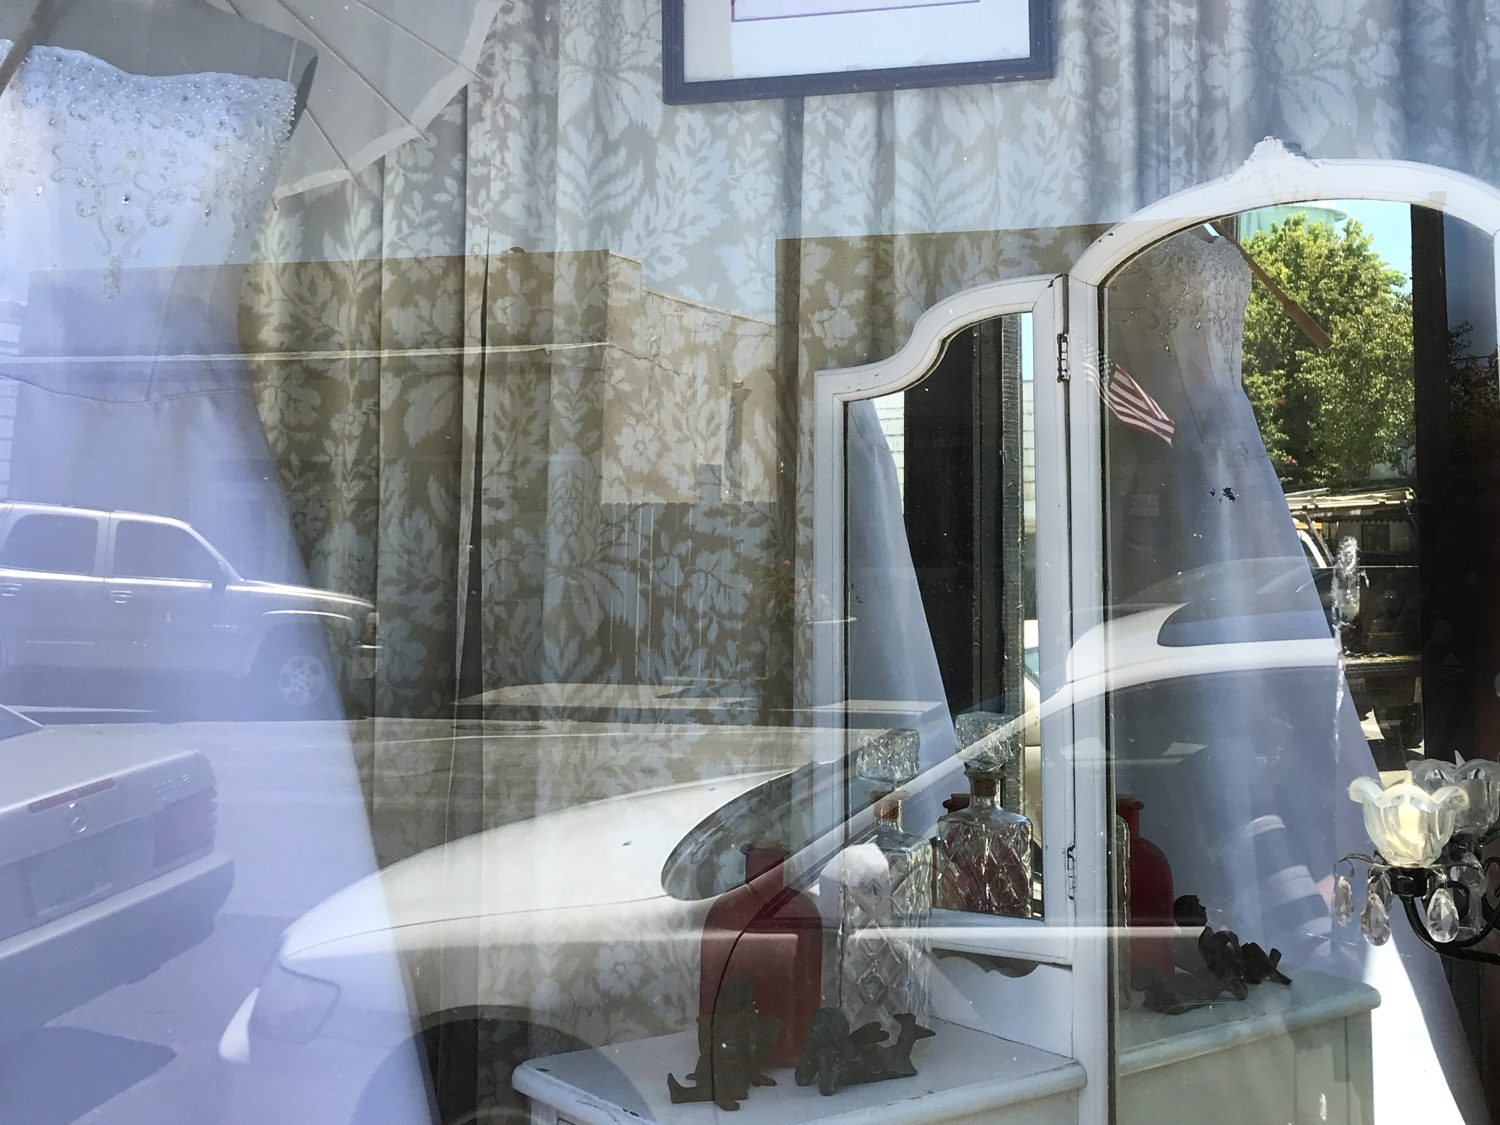 Window shopping of wedding boutiques in Isleton